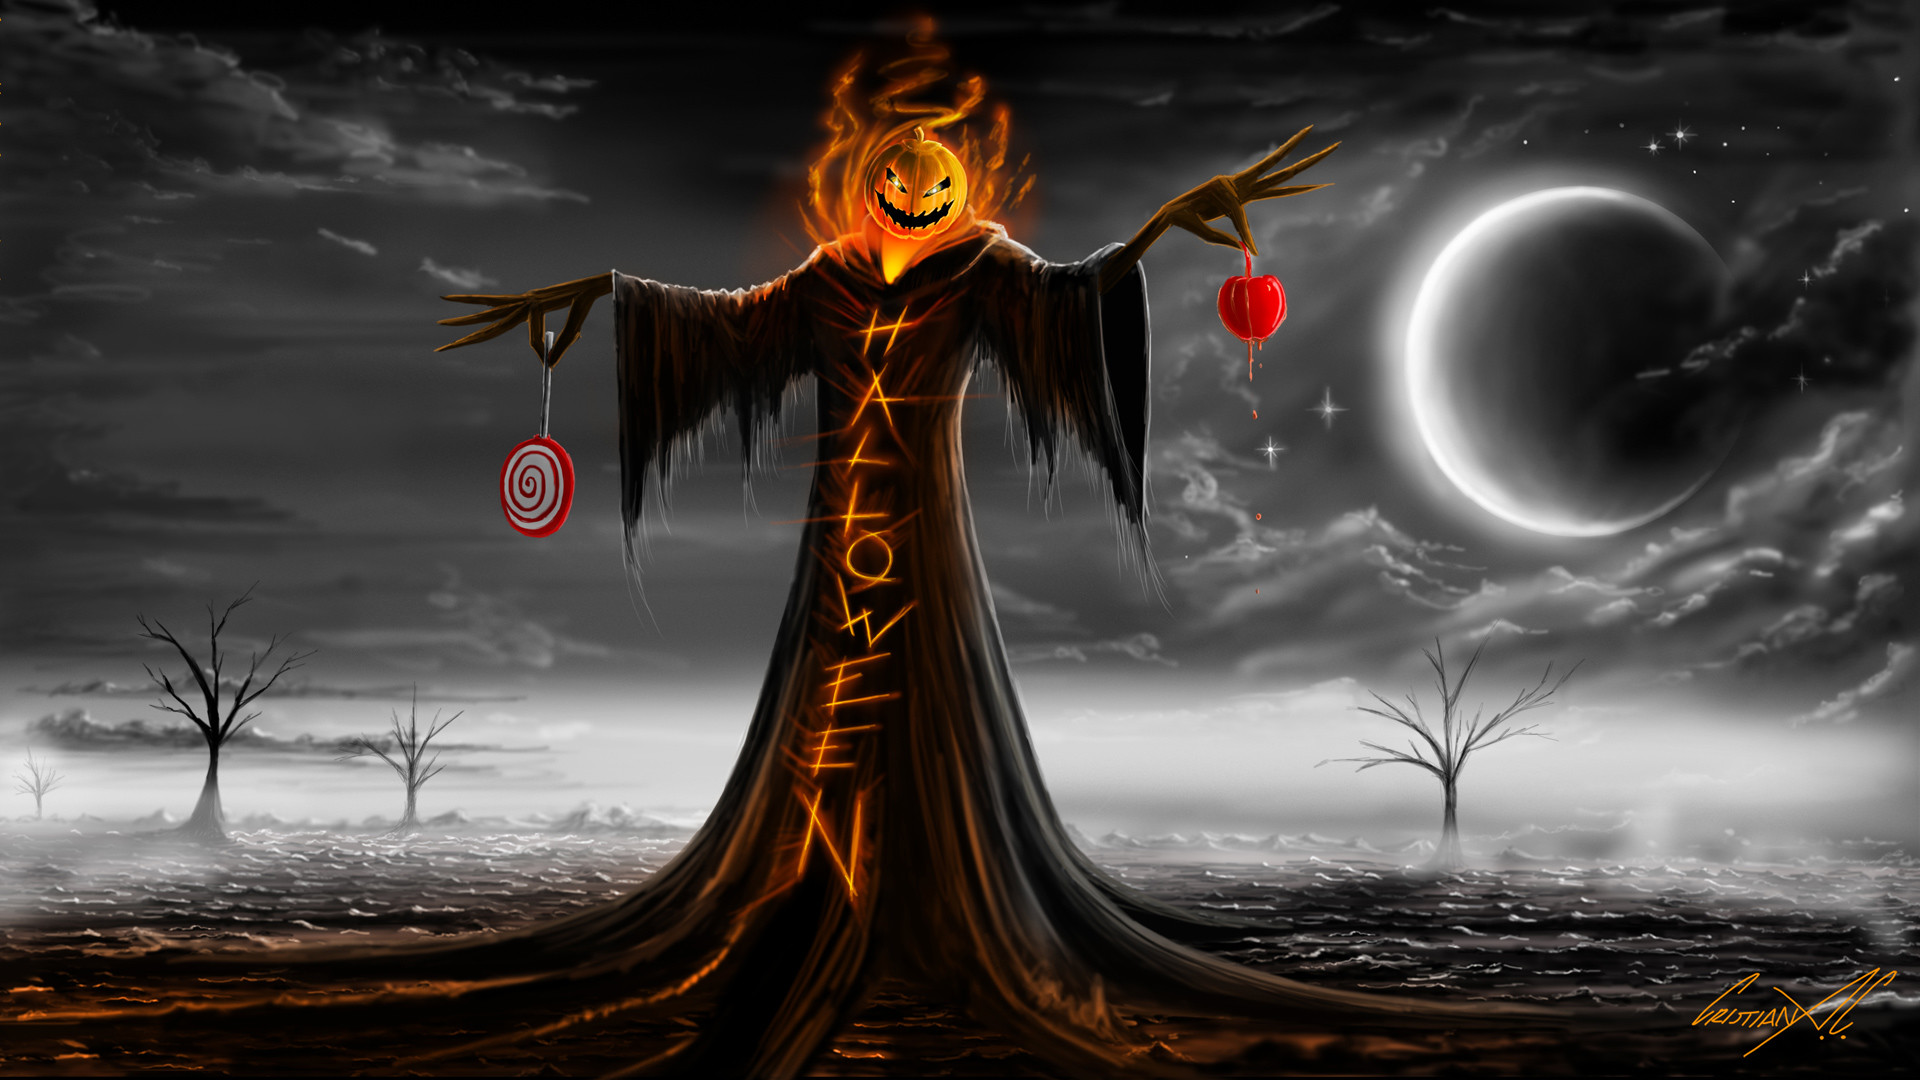 1920x1080 Halloween Specter Scarecrow Pumpkin Fire Flames Tunic Lollipops Moon Stars  Clouds Night Trees Desert Scare Fear Painting hd wallpaper by LadyGaga